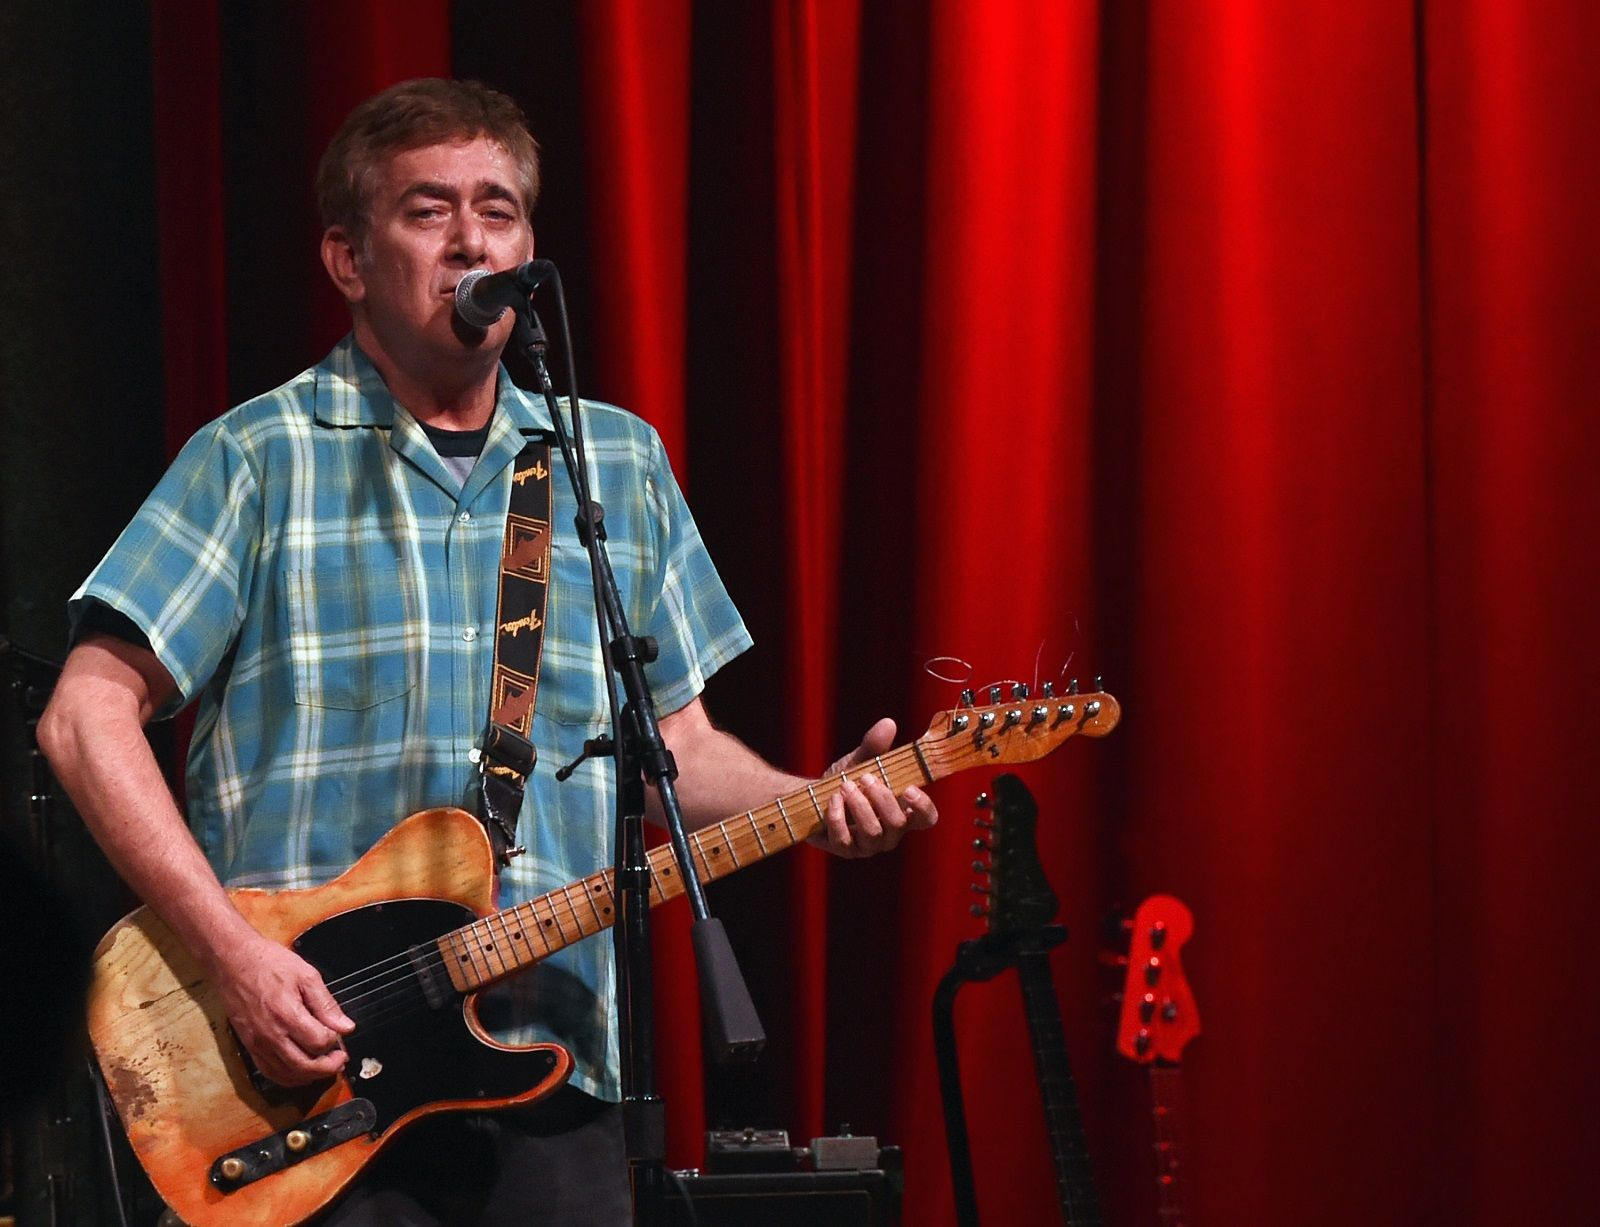 """NASHVILLE, TN - JULY 28:  Singer/Songwriter Tommy Keene performs at City Winery Nashville on July 28, 2017 in Nashville, Tennessee. Tommy Keene, whose 1984 hit """"Places That Are Gone"""" established the Bethesda-born singer-songwriter as one of new wave's most promising stars, has died at 59. (Photo by Rick Diamond/Getty Images)"""